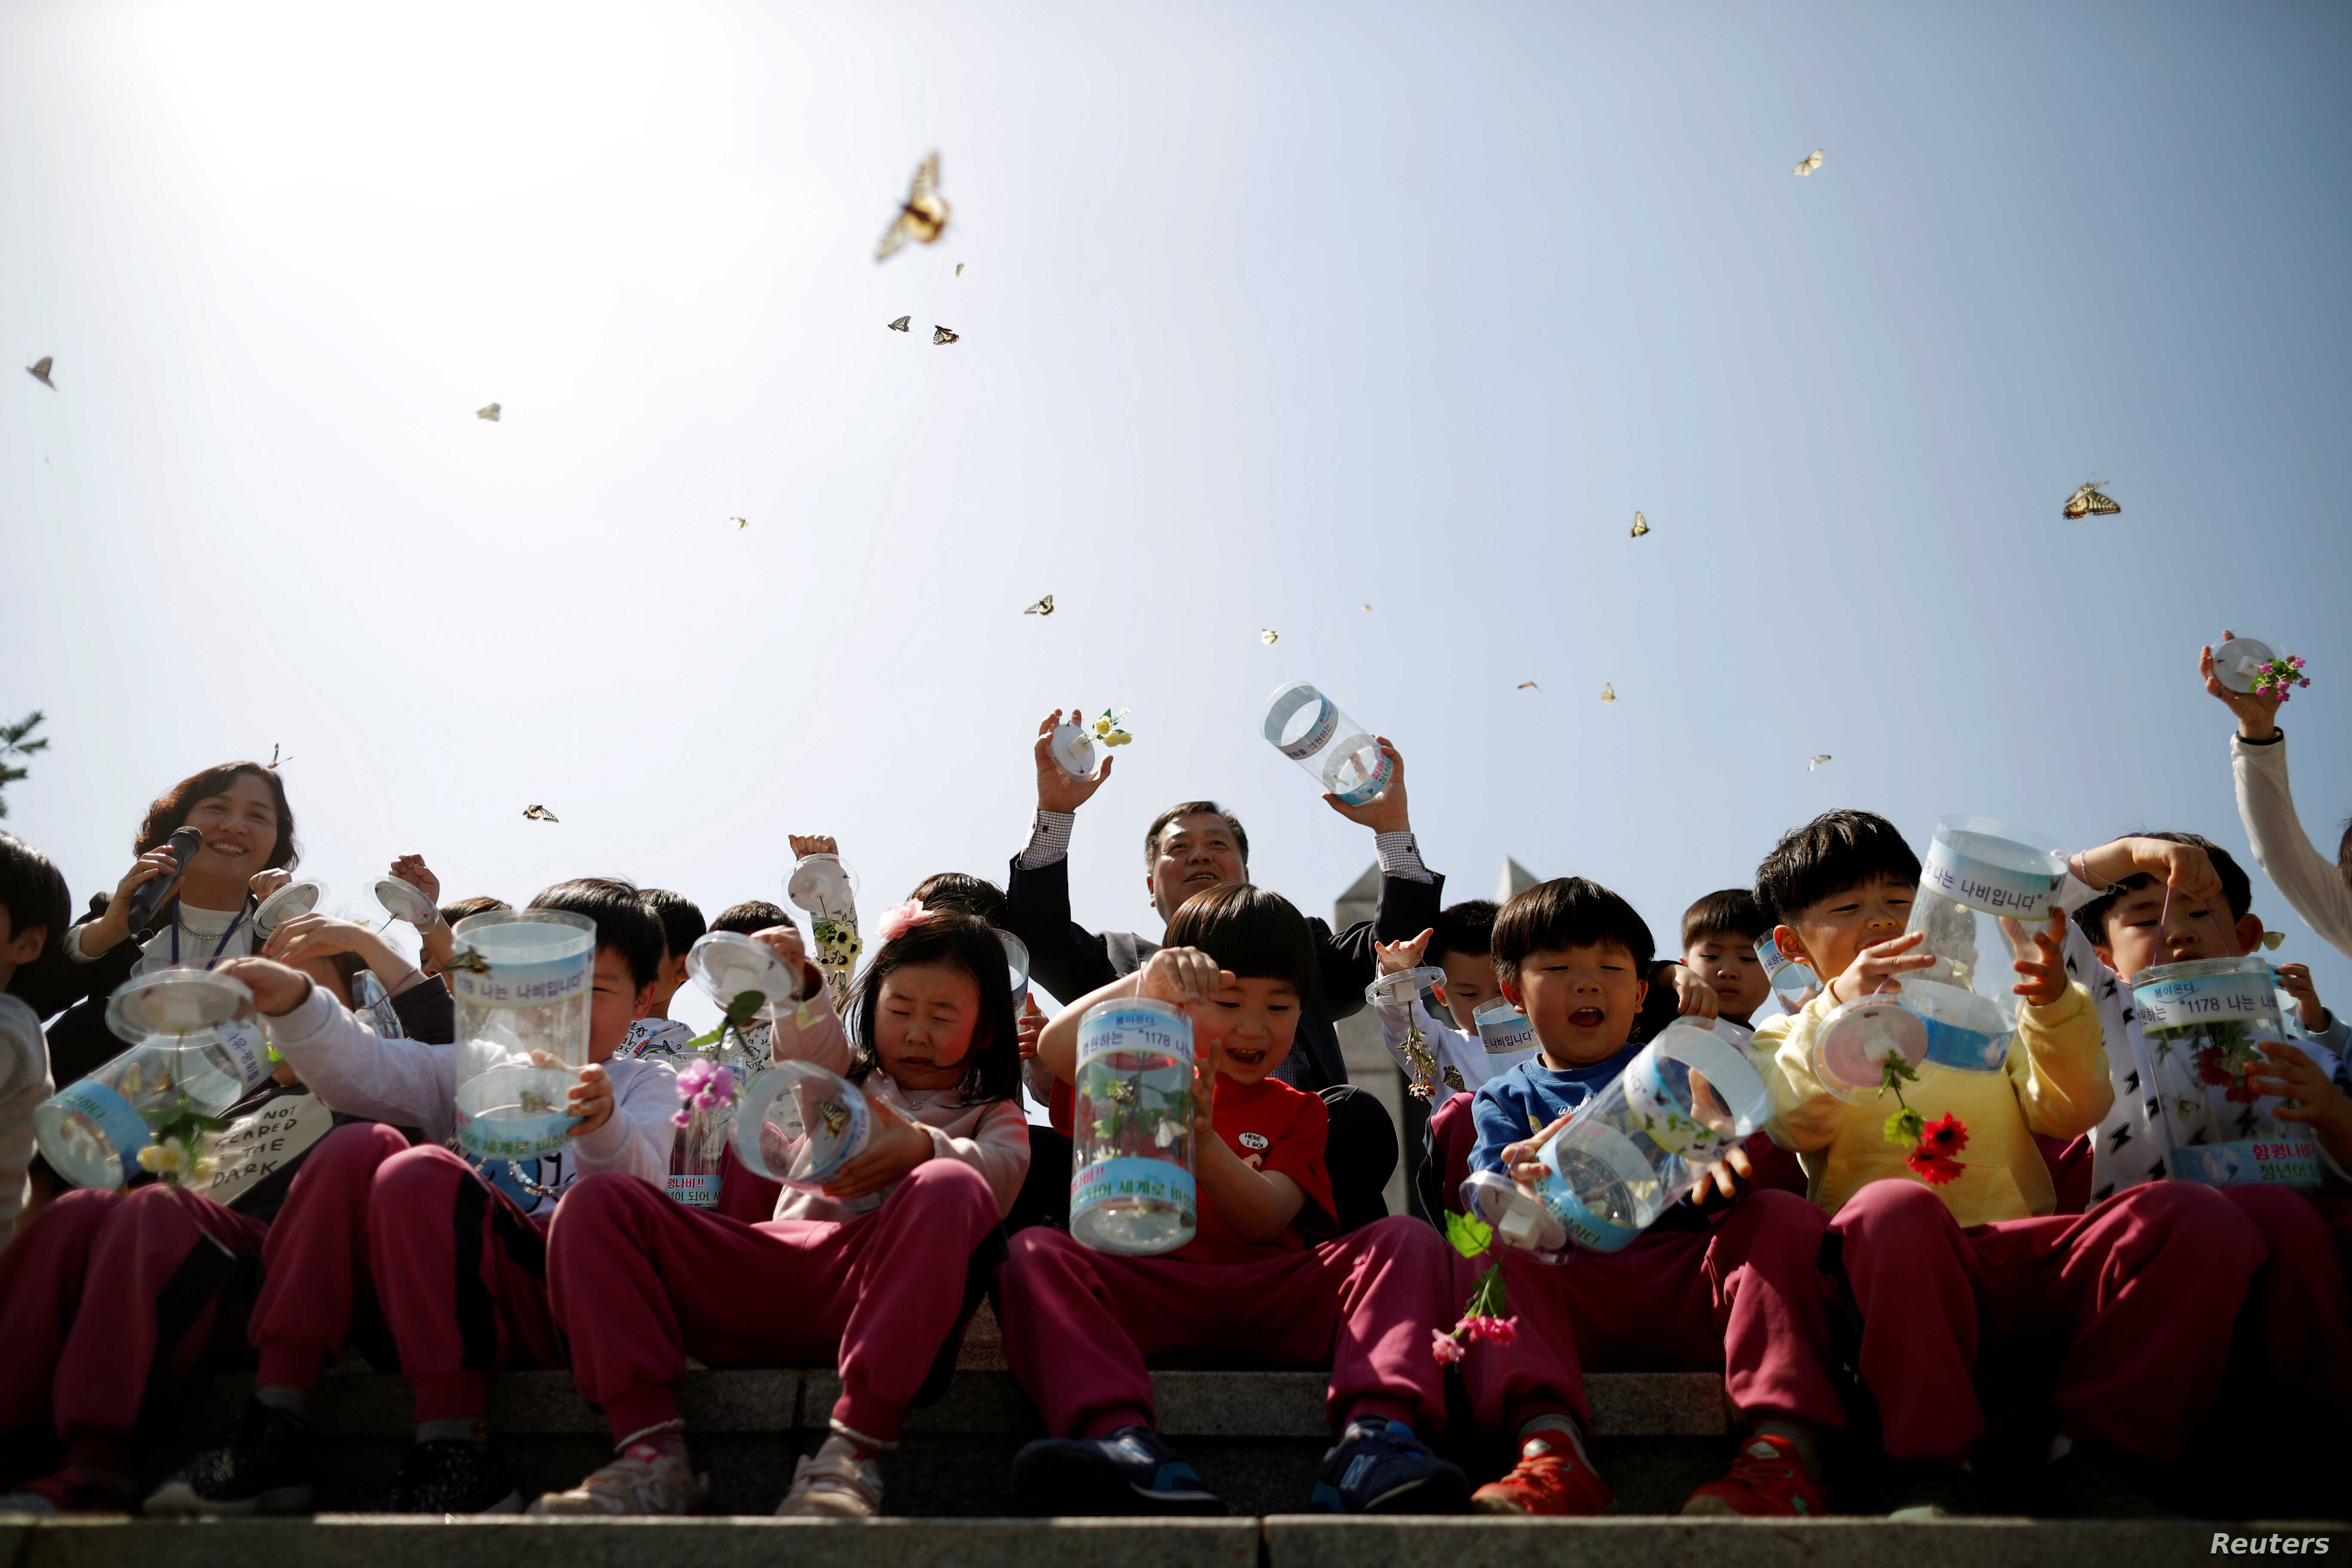 Children release butterflies during an event to wish for a successful inter-Korean summit, near the demilitarized zone separating the two Koreas in Paju, South Korea, April 25, 2018.